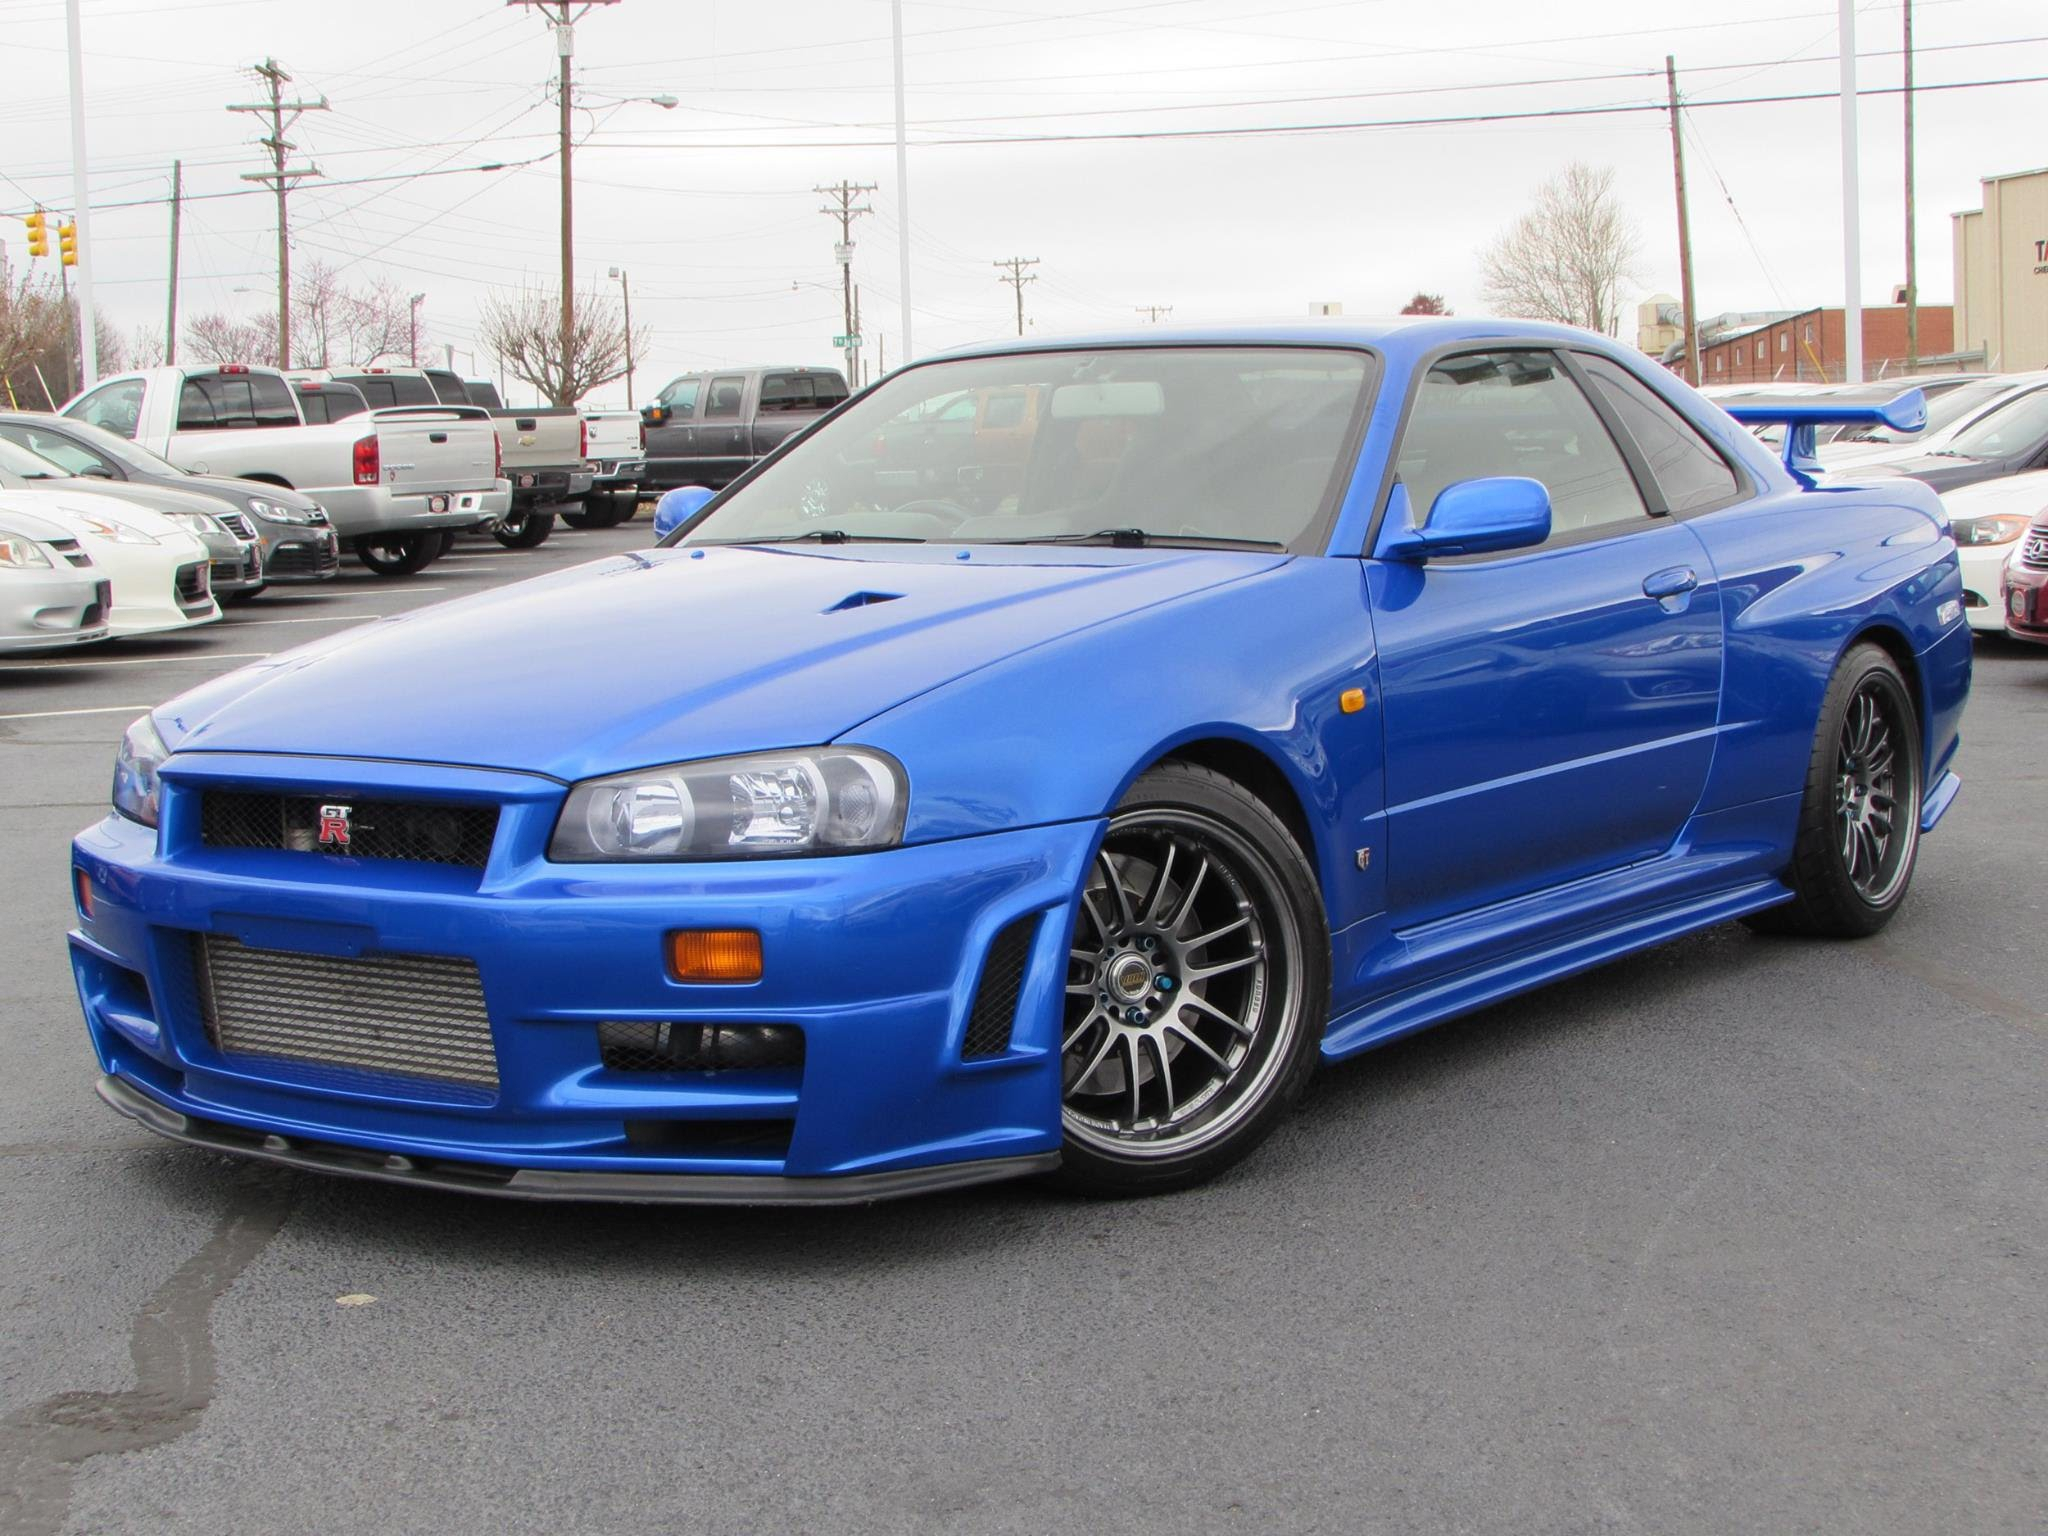 nissan skyline gt r wallpapers images photos pictures backgrounds. Black Bedroom Furniture Sets. Home Design Ideas